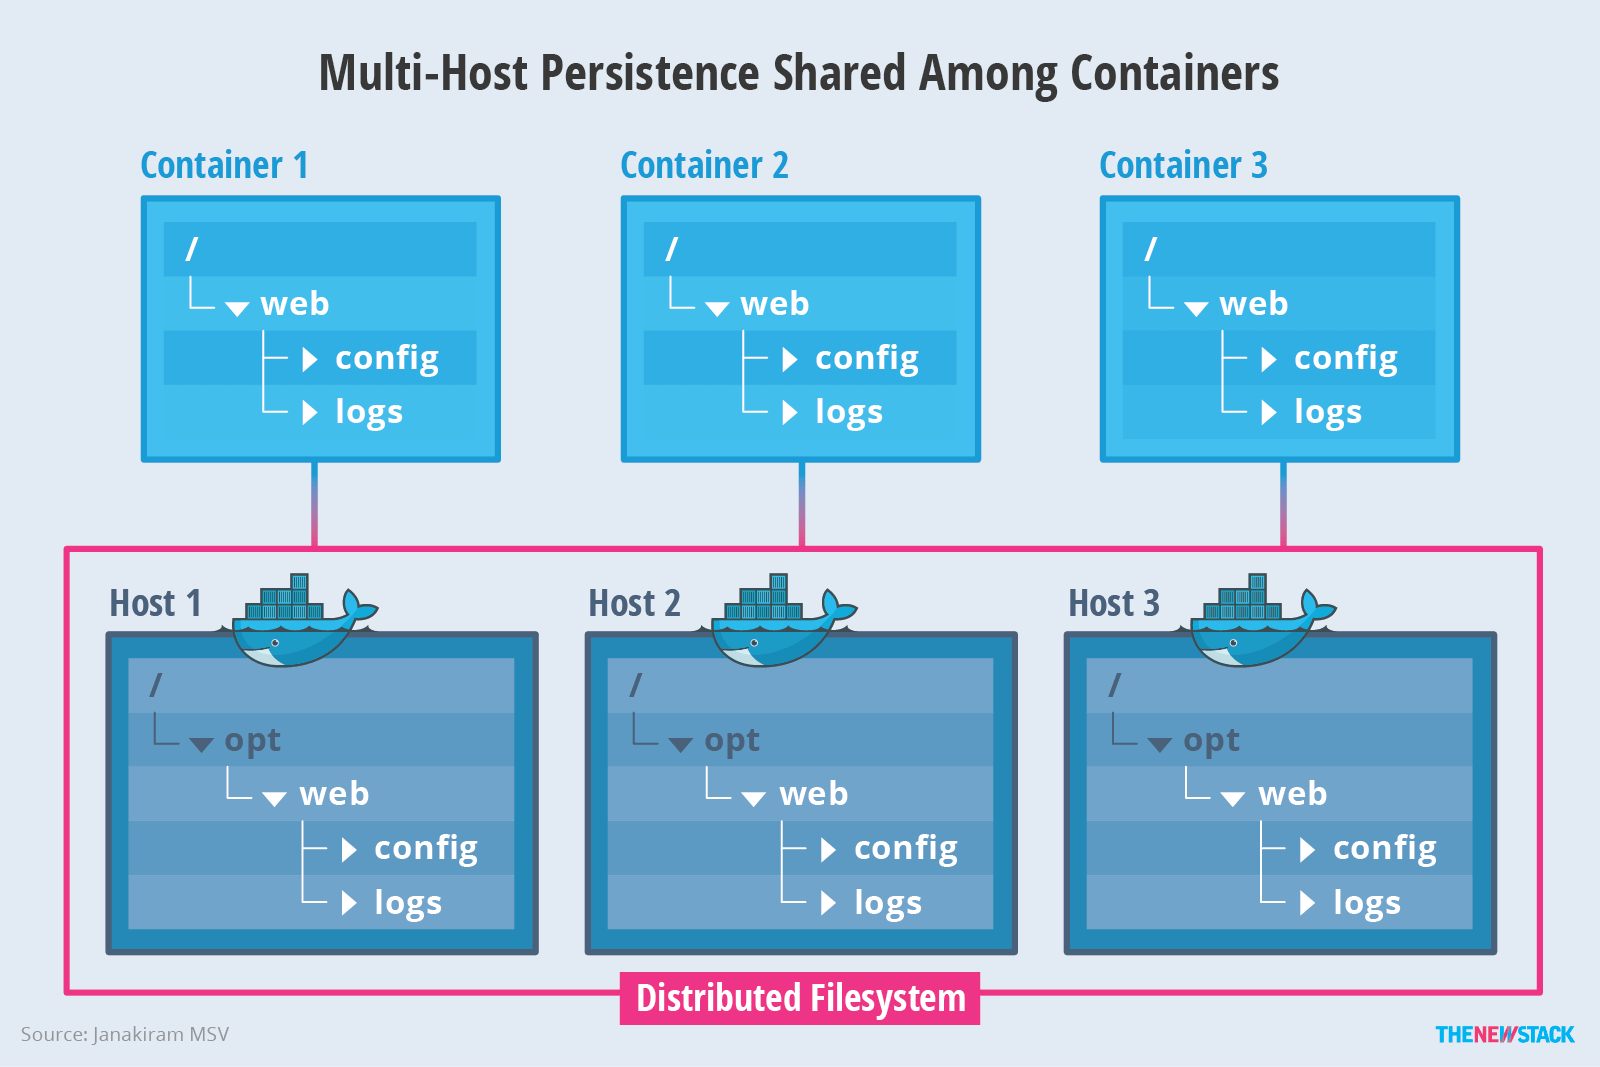 Managing Persistence for Docker Containers - The New Stack